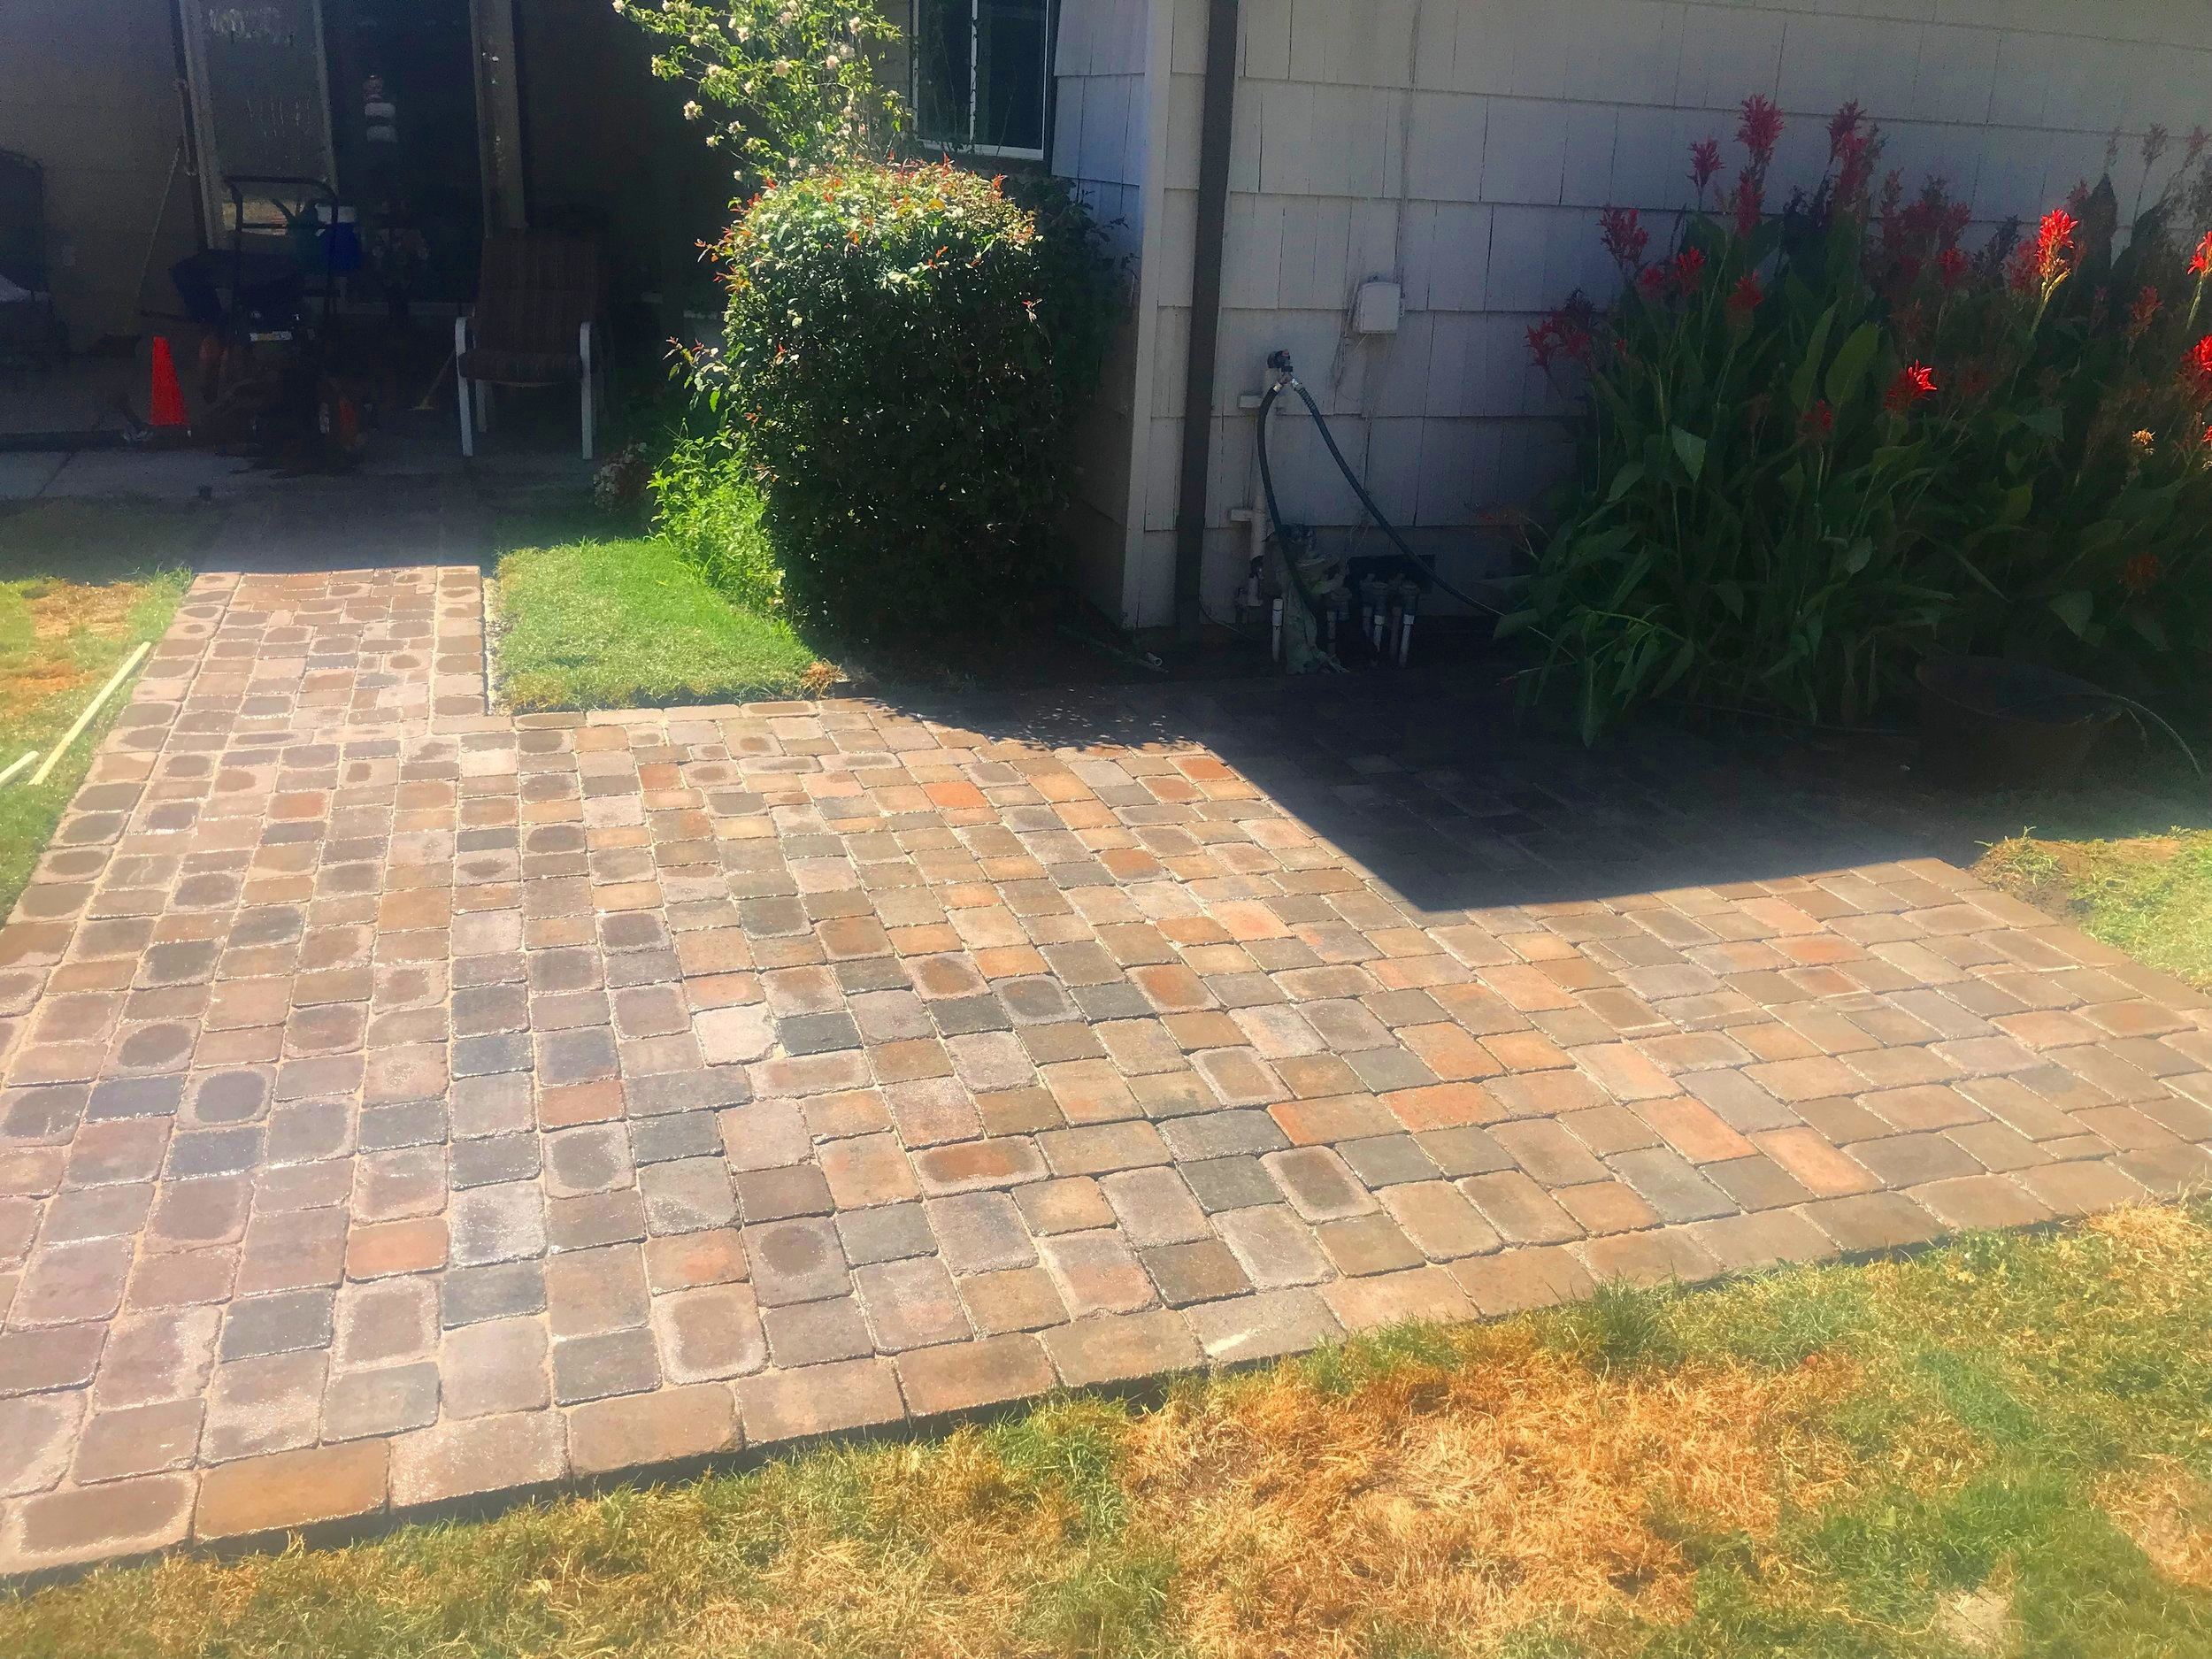 landscaping-pavers2.jpeg